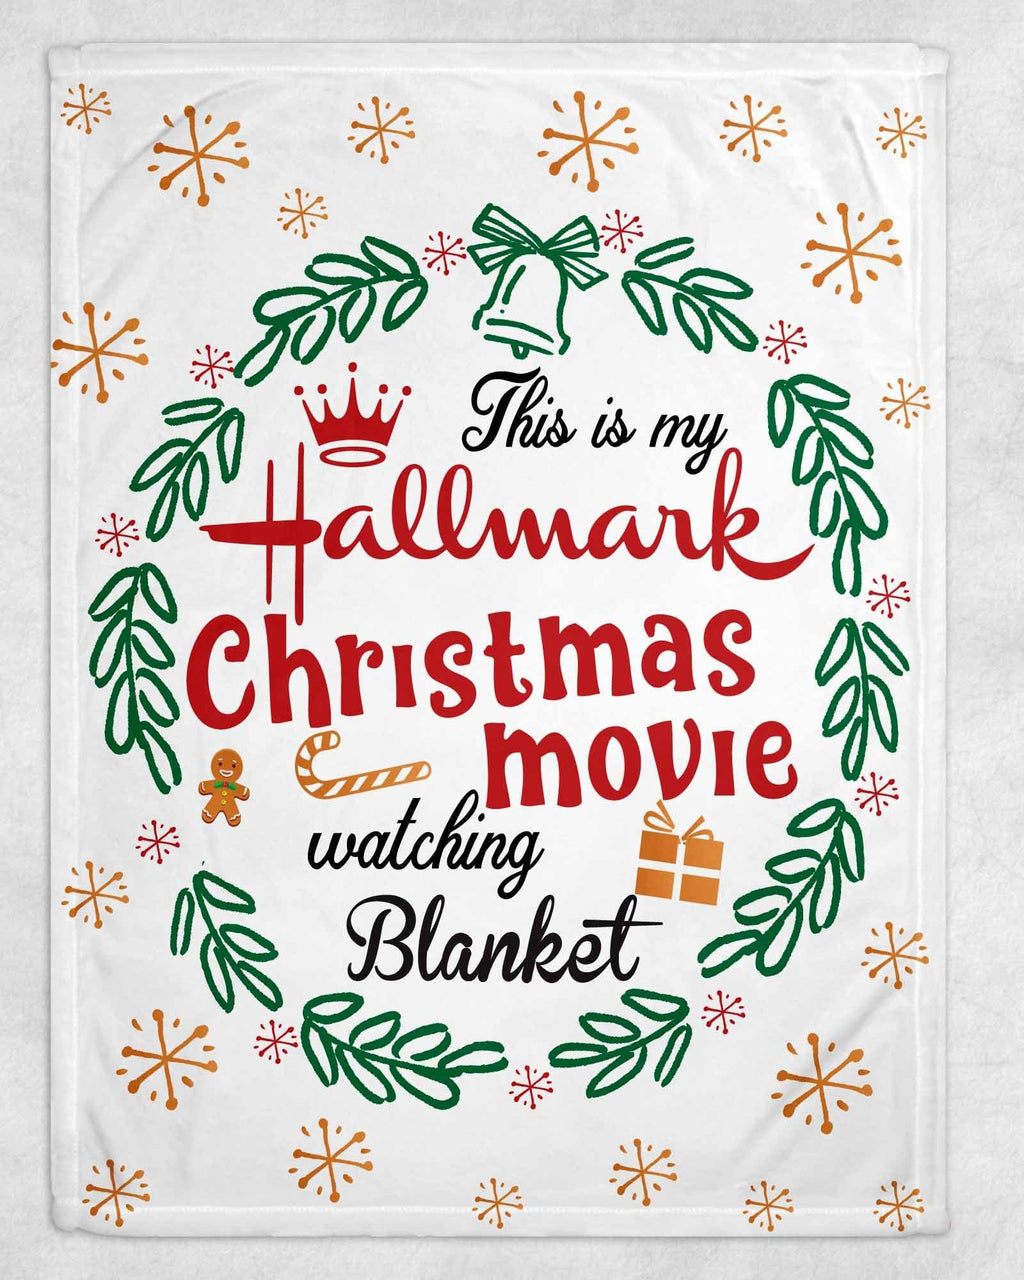 Hallmark Movie Fleece Blanket - Potter's Printing